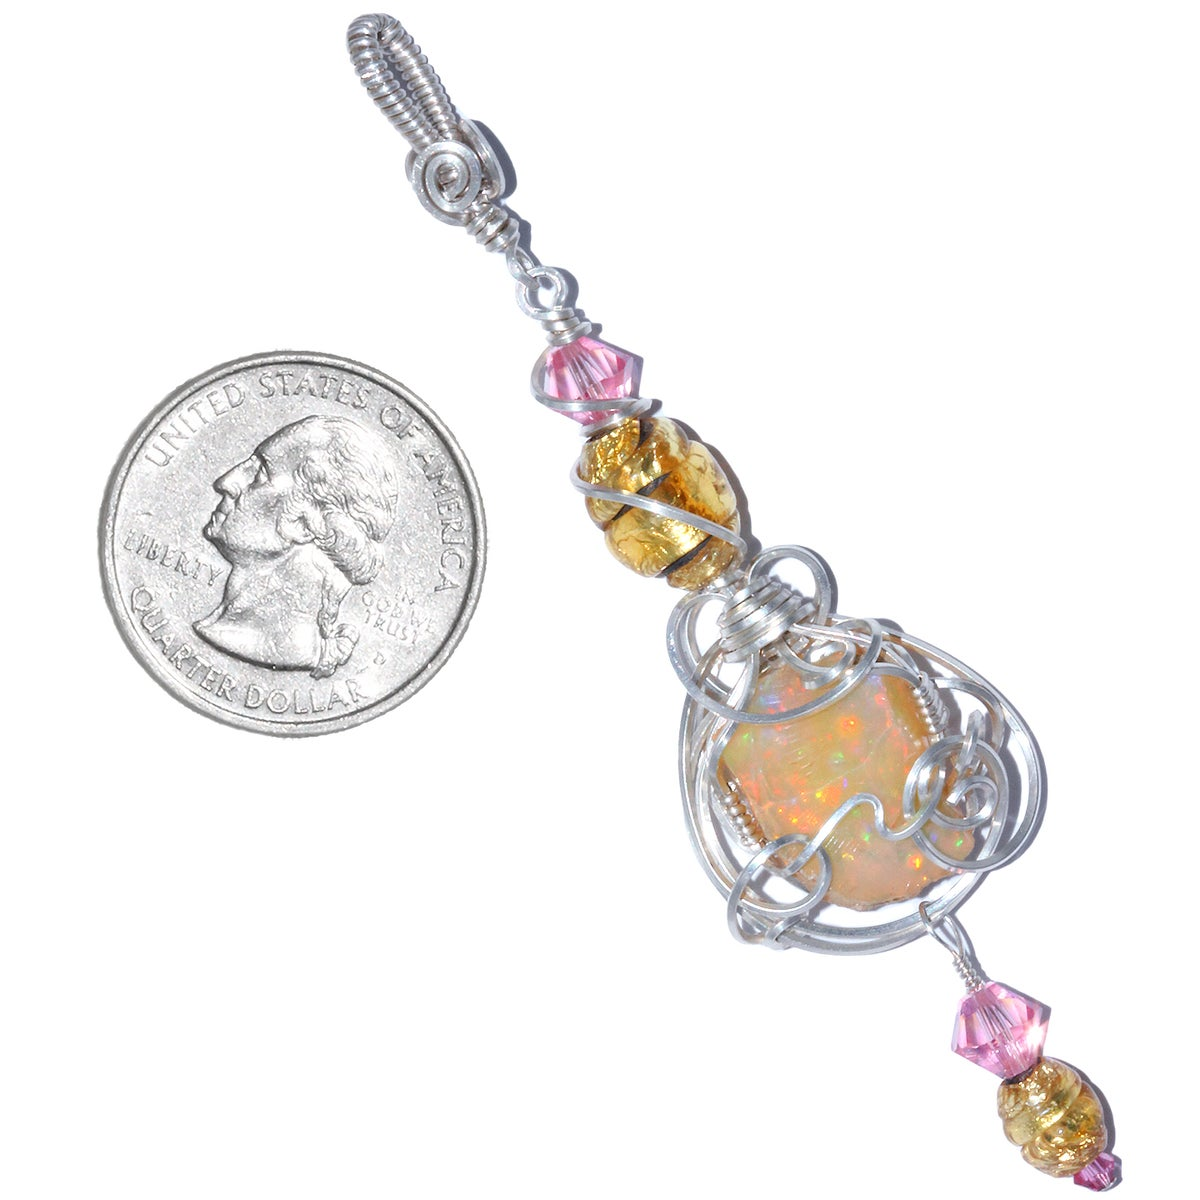 Ethiopian Opal Pendant with Antique Venetian Glass Foil Beads